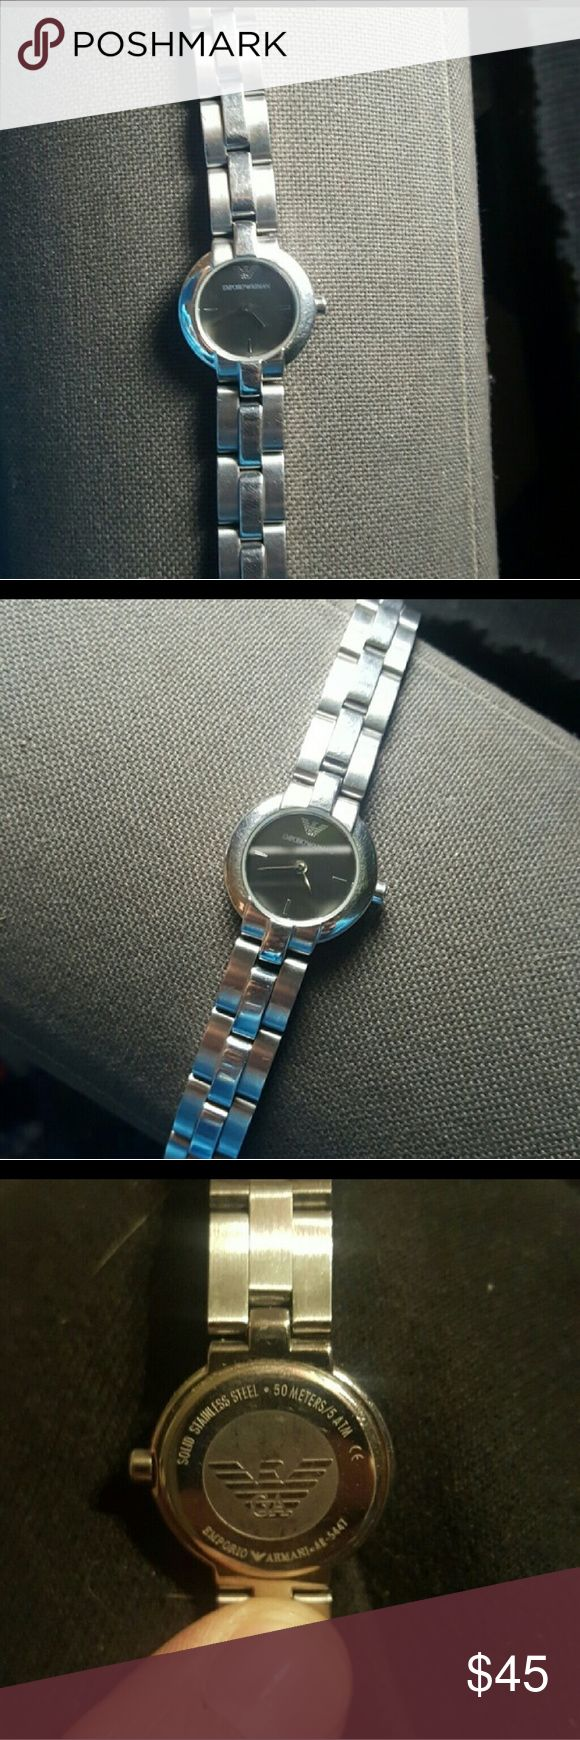 EMPORIO ARMANI WATCH- AUTHENTIC Authentic Armani watch. Solid stainless steel. 50 meters/5ATM. Beautiful two tone silver. Barely worn even when battery worked. Its a very sharp looking watch. The glass plate is in excellent condition, barely any scratches, if any. The battery died but the watch definitely works. I would suggest a small to medium wrist. Links can be removed if needed or can always switch out the band for a new one. Price is firm. (Will add more photos) Emporio Armani…